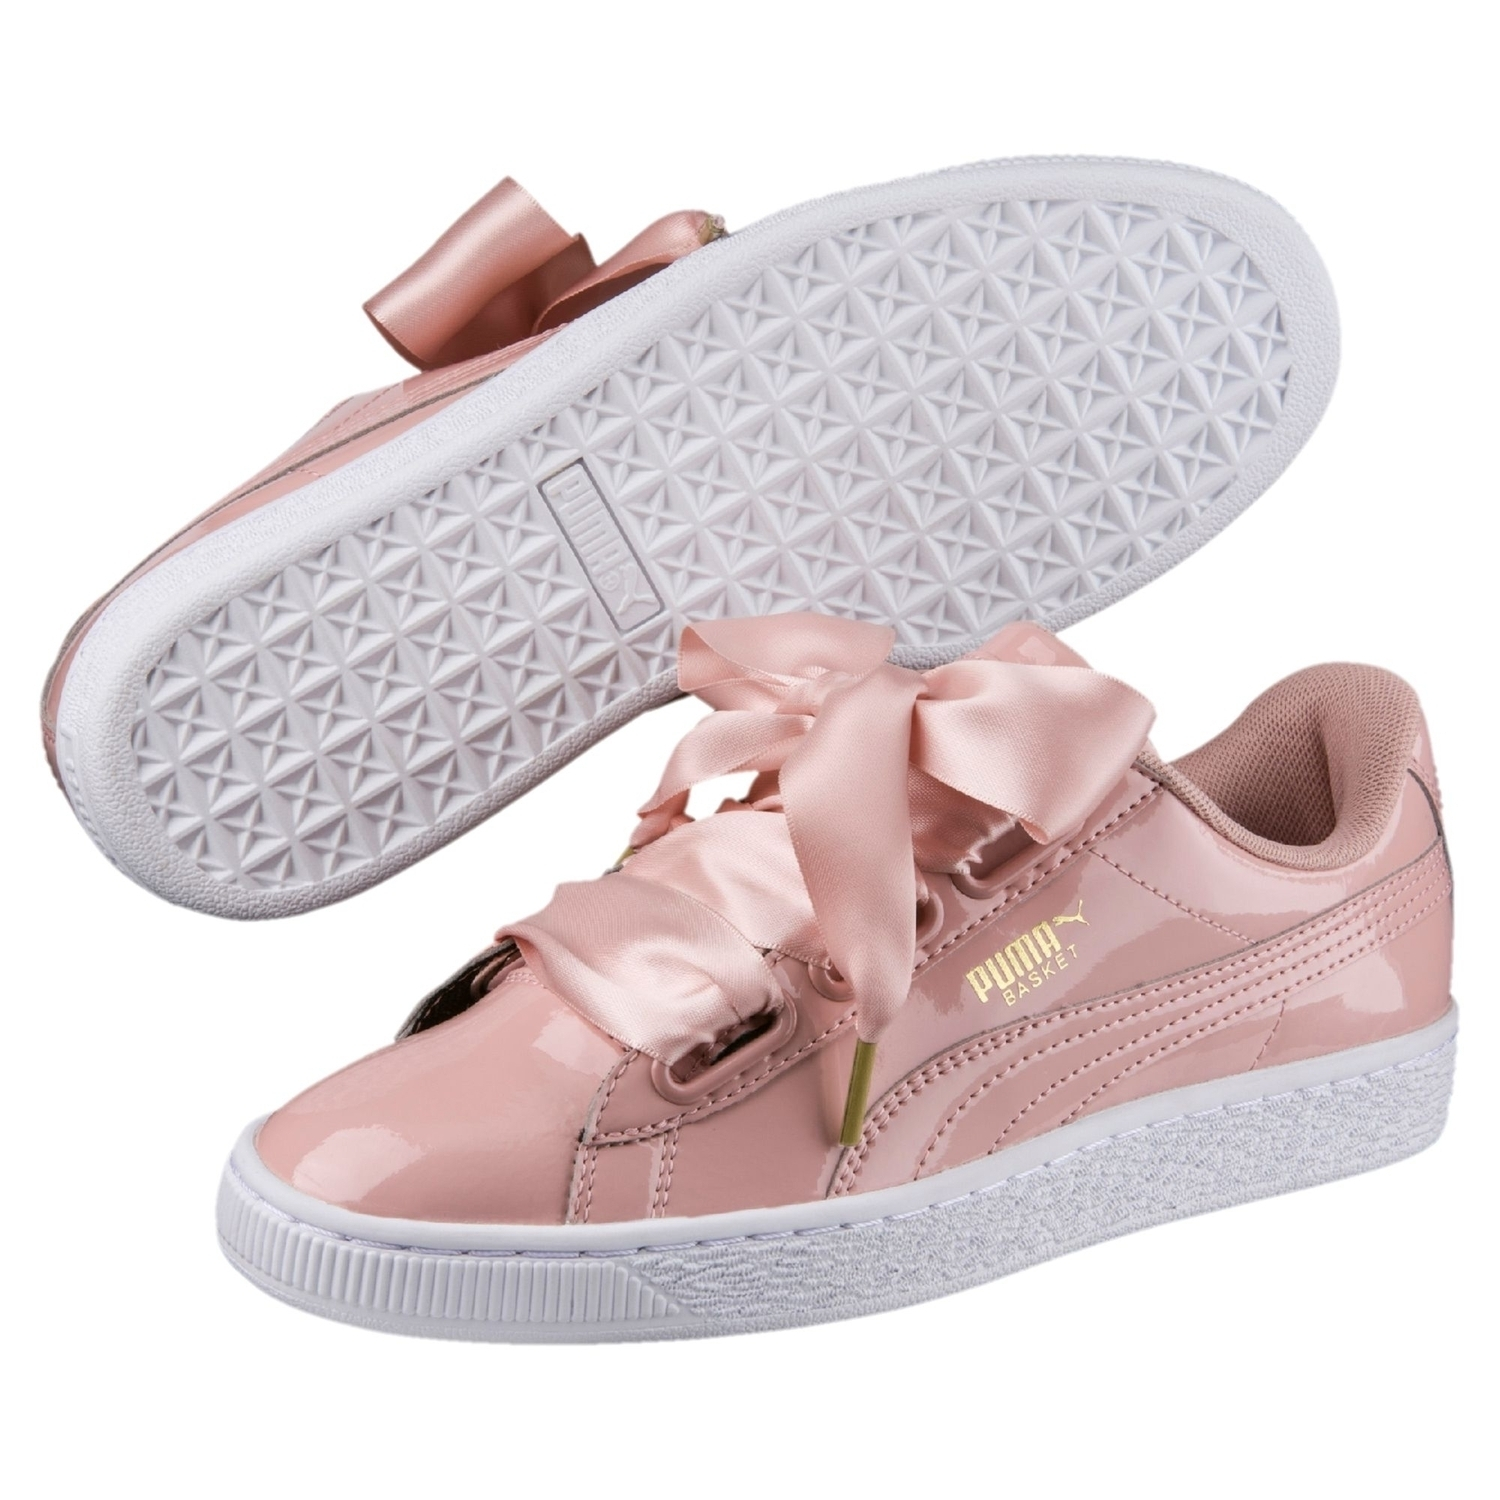 brand new 4625c ba5d9 Request BASKET HEART PATENT WOMEN'S SNEAKERS | Grabr P2P ...